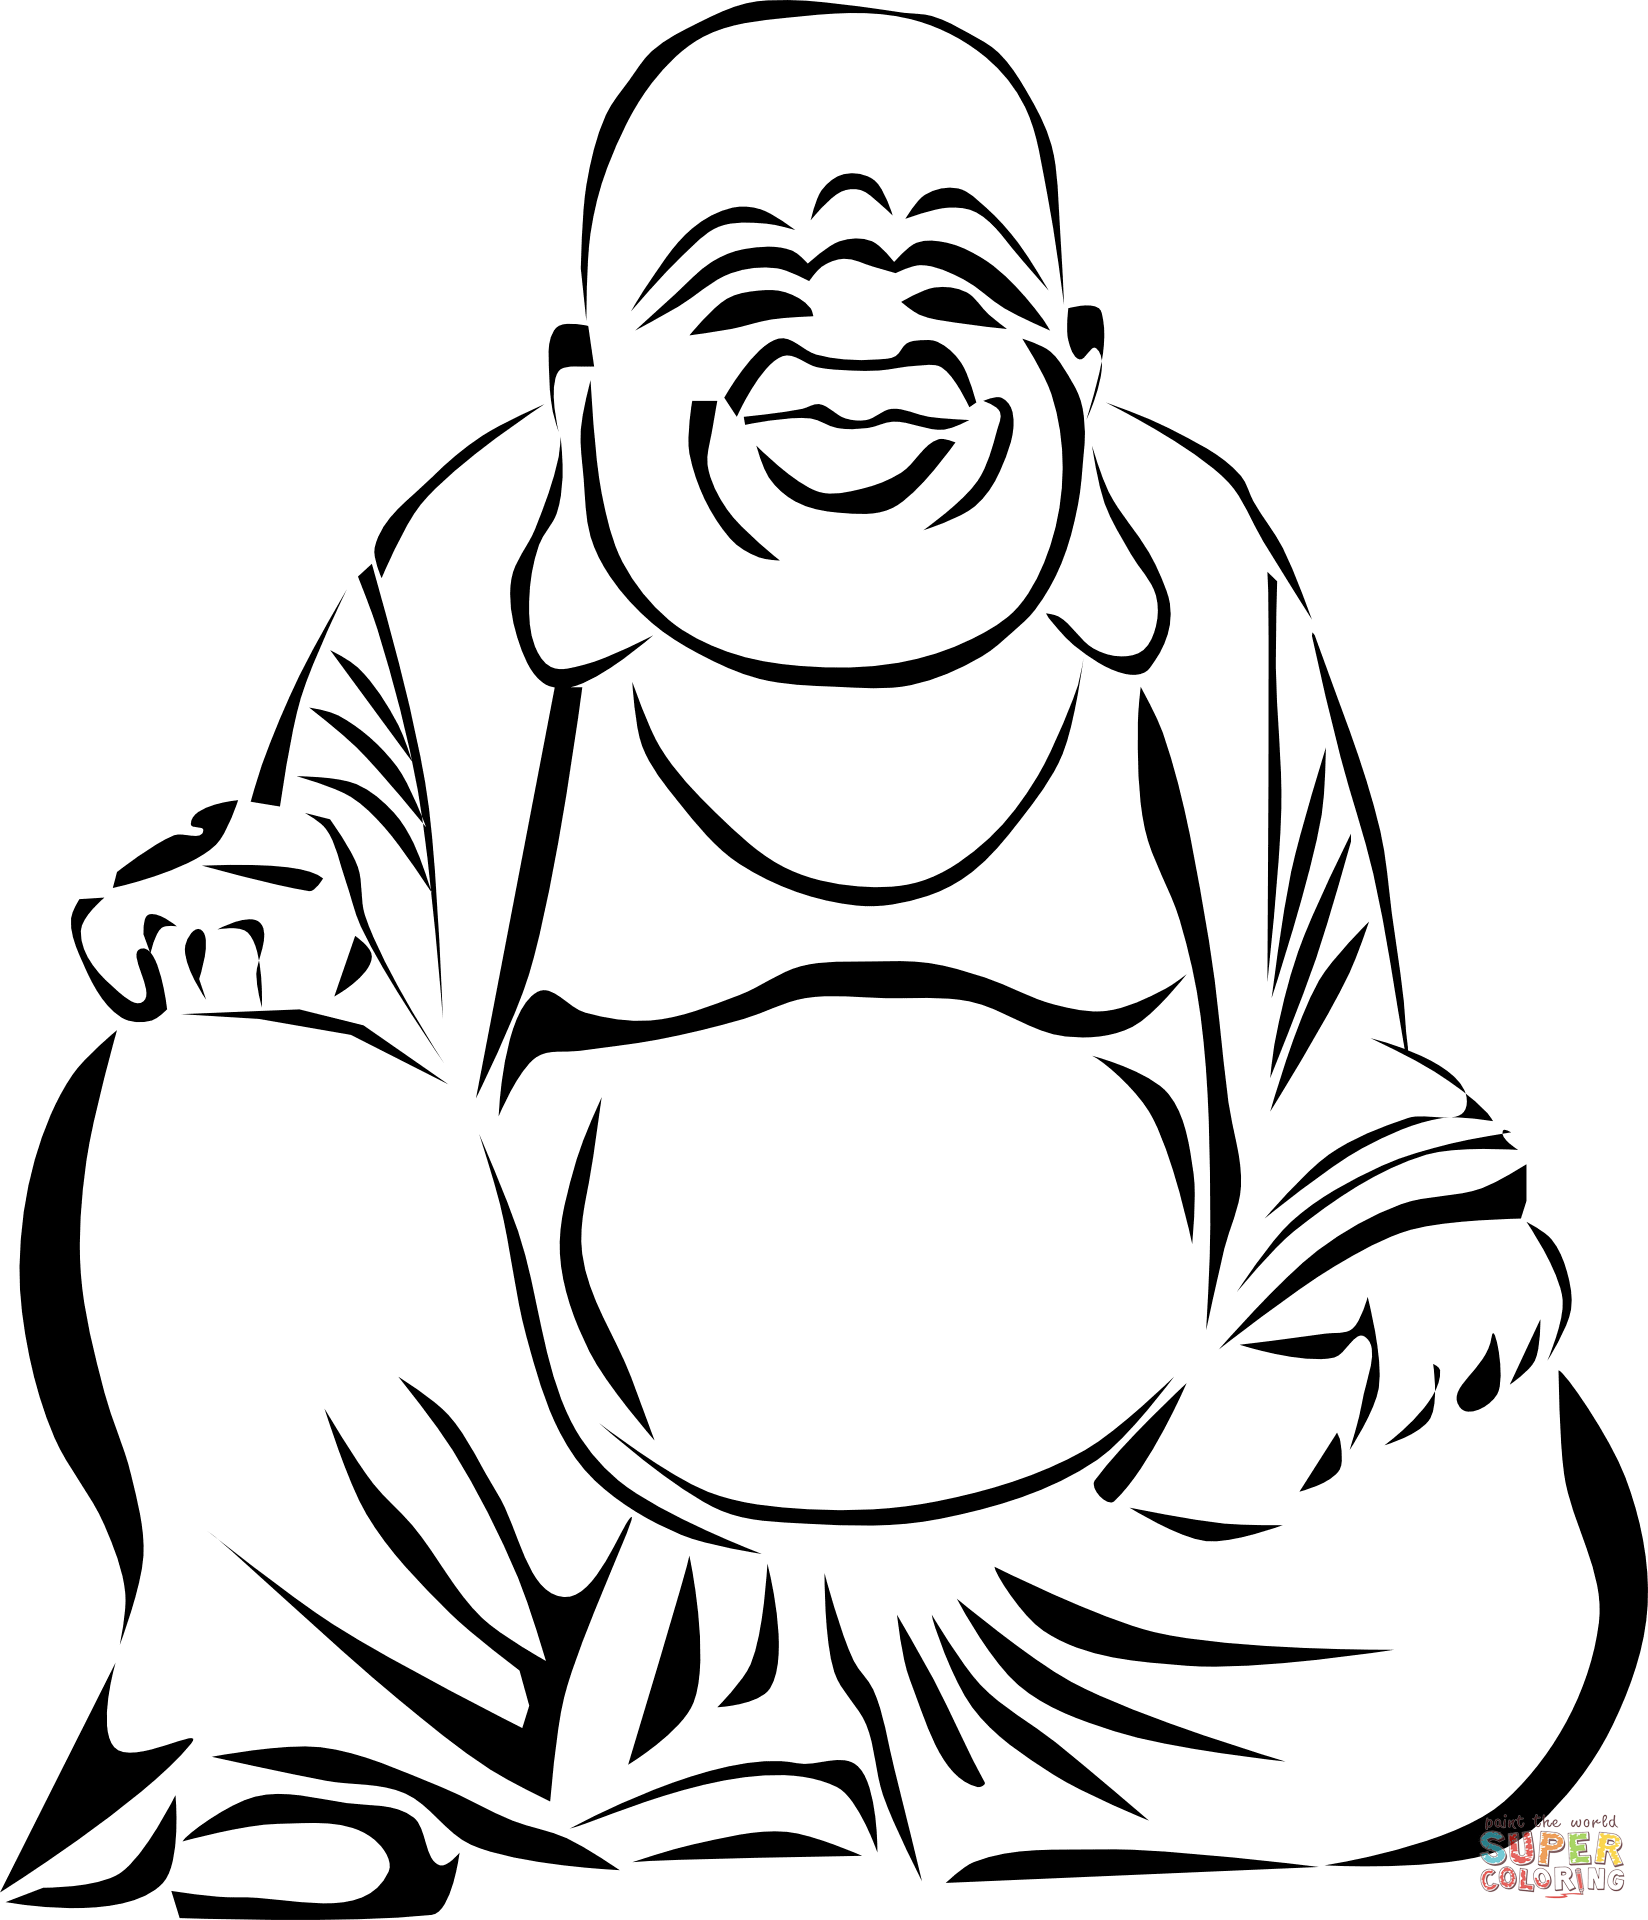 buddhist coloring pages buddha coloring pages download and print buddha coloring coloring buddhist pages